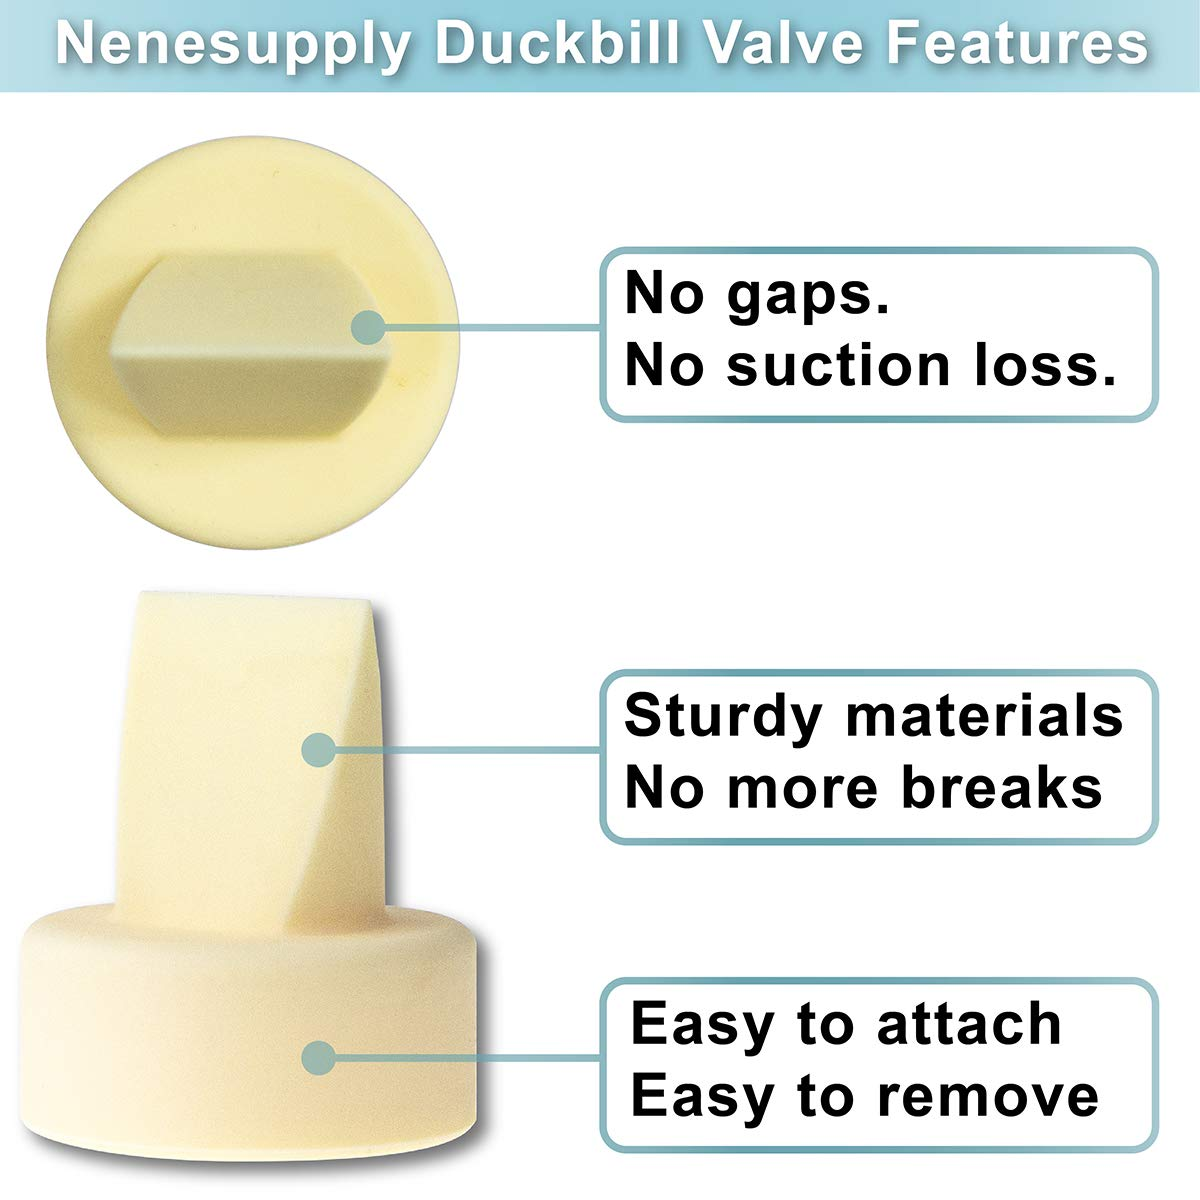 6pc White Nenesupply Compatible Duckbill Valves for Spectra S1 Spectra S2 and Medela Pump in Style Not Original Spectra Pump Parts Replace Spectra Duckbill Valve